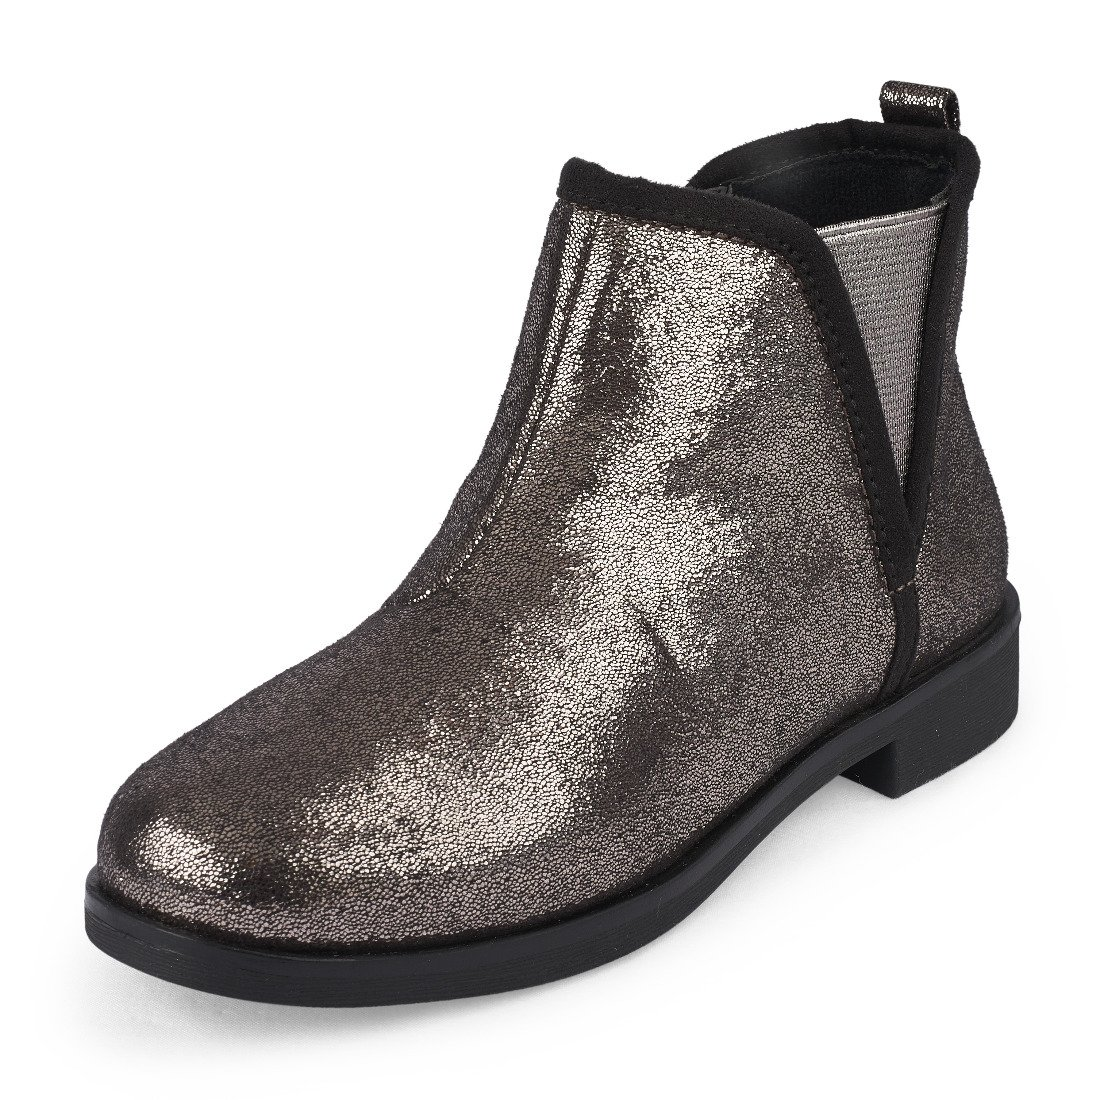 The Children's Place Girls' Ankle Fashion Boot, Gunmetal, Youth 1 M US Little Kid